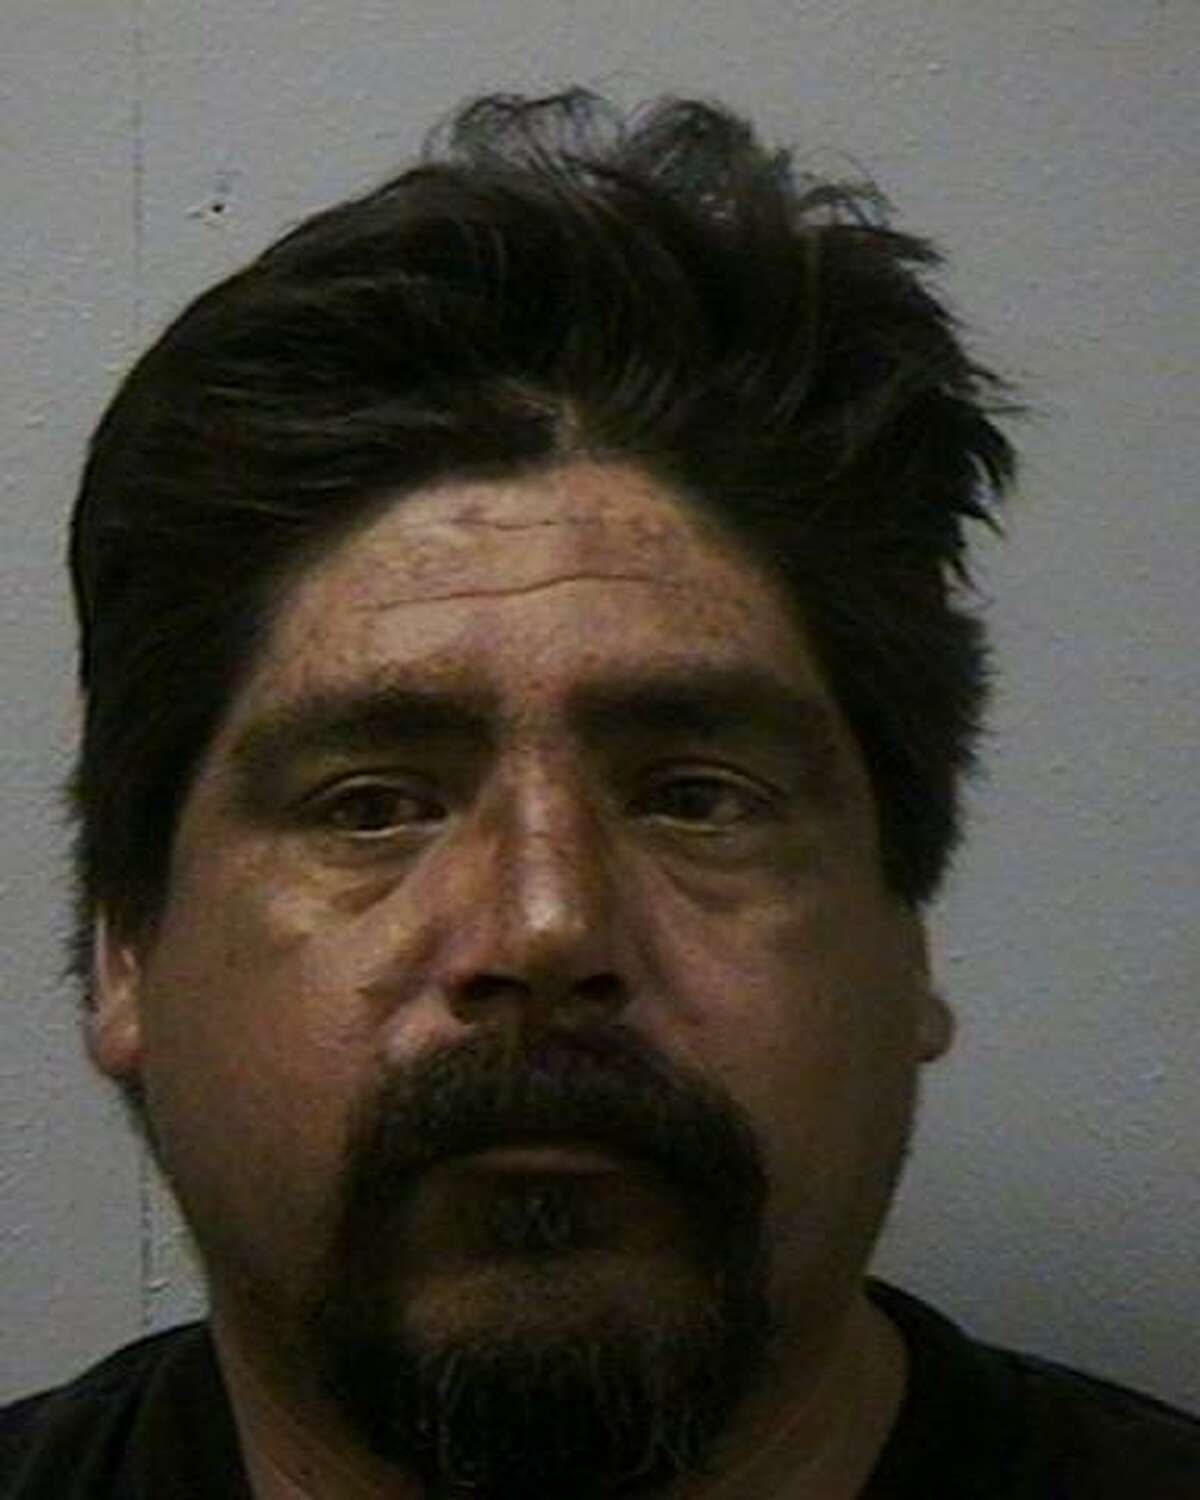 Samuel Rocha is wanted by the Houston Police Department on a charge of failure to comply as a sex offender. His warrant is active as of Wednesday.